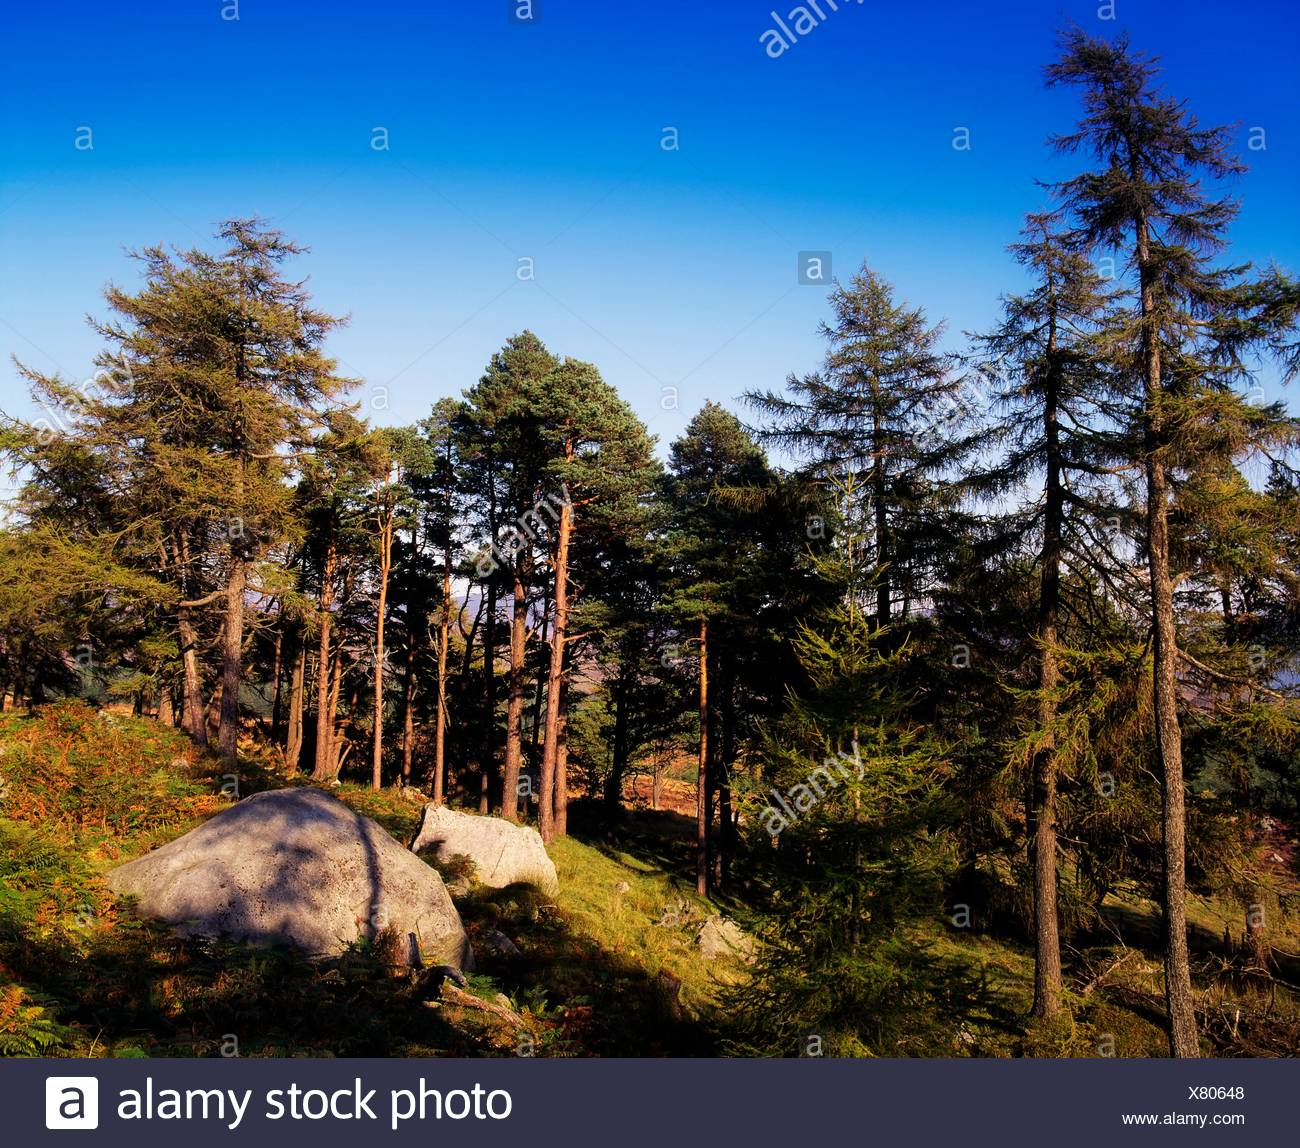 Co Wicklow, Ireland; Forest Near Sally Gap - Stock Image